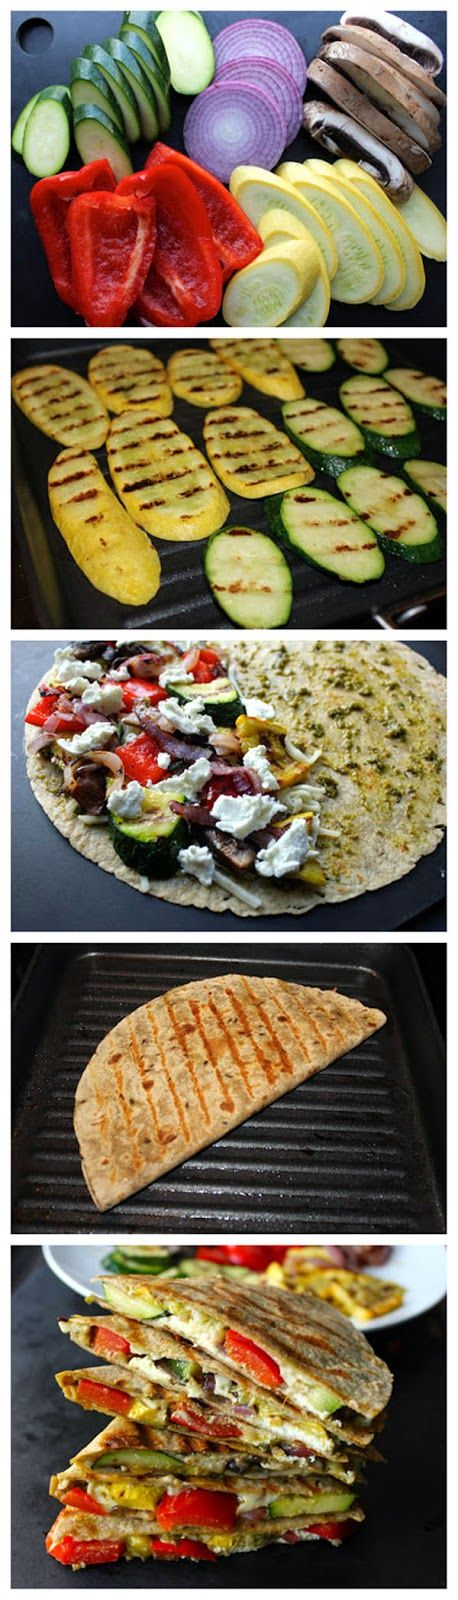 #Yum Mex #Recipe: Grilled Vegetable #Quesadillas with Goat Cheese and Pesto